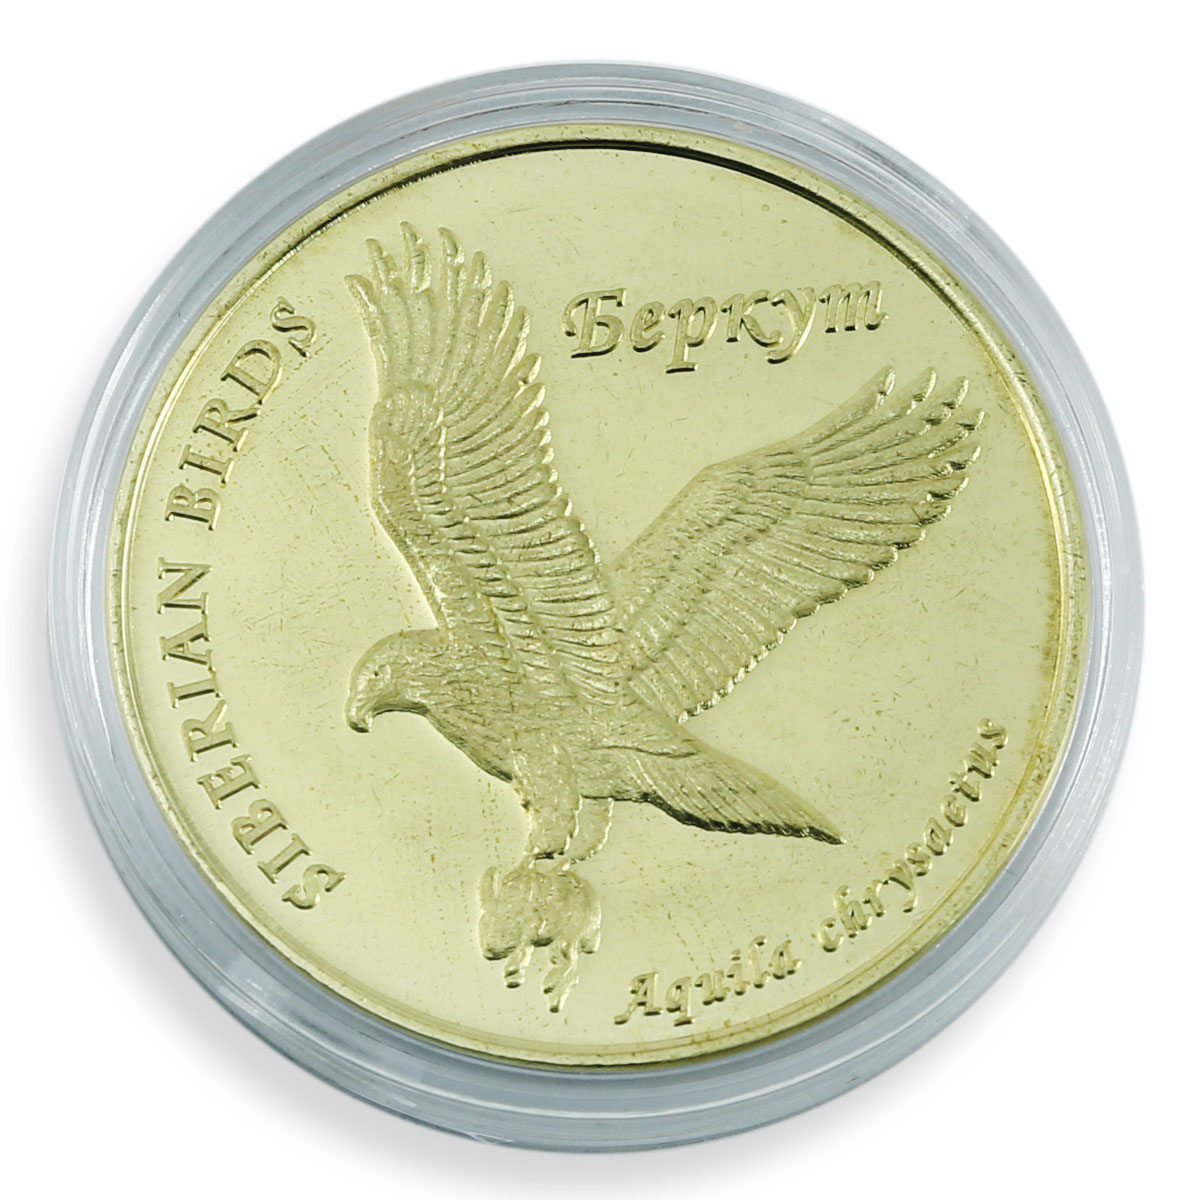 Falcon Island 5 dollars Siberian birds Golden eagle coin 2018